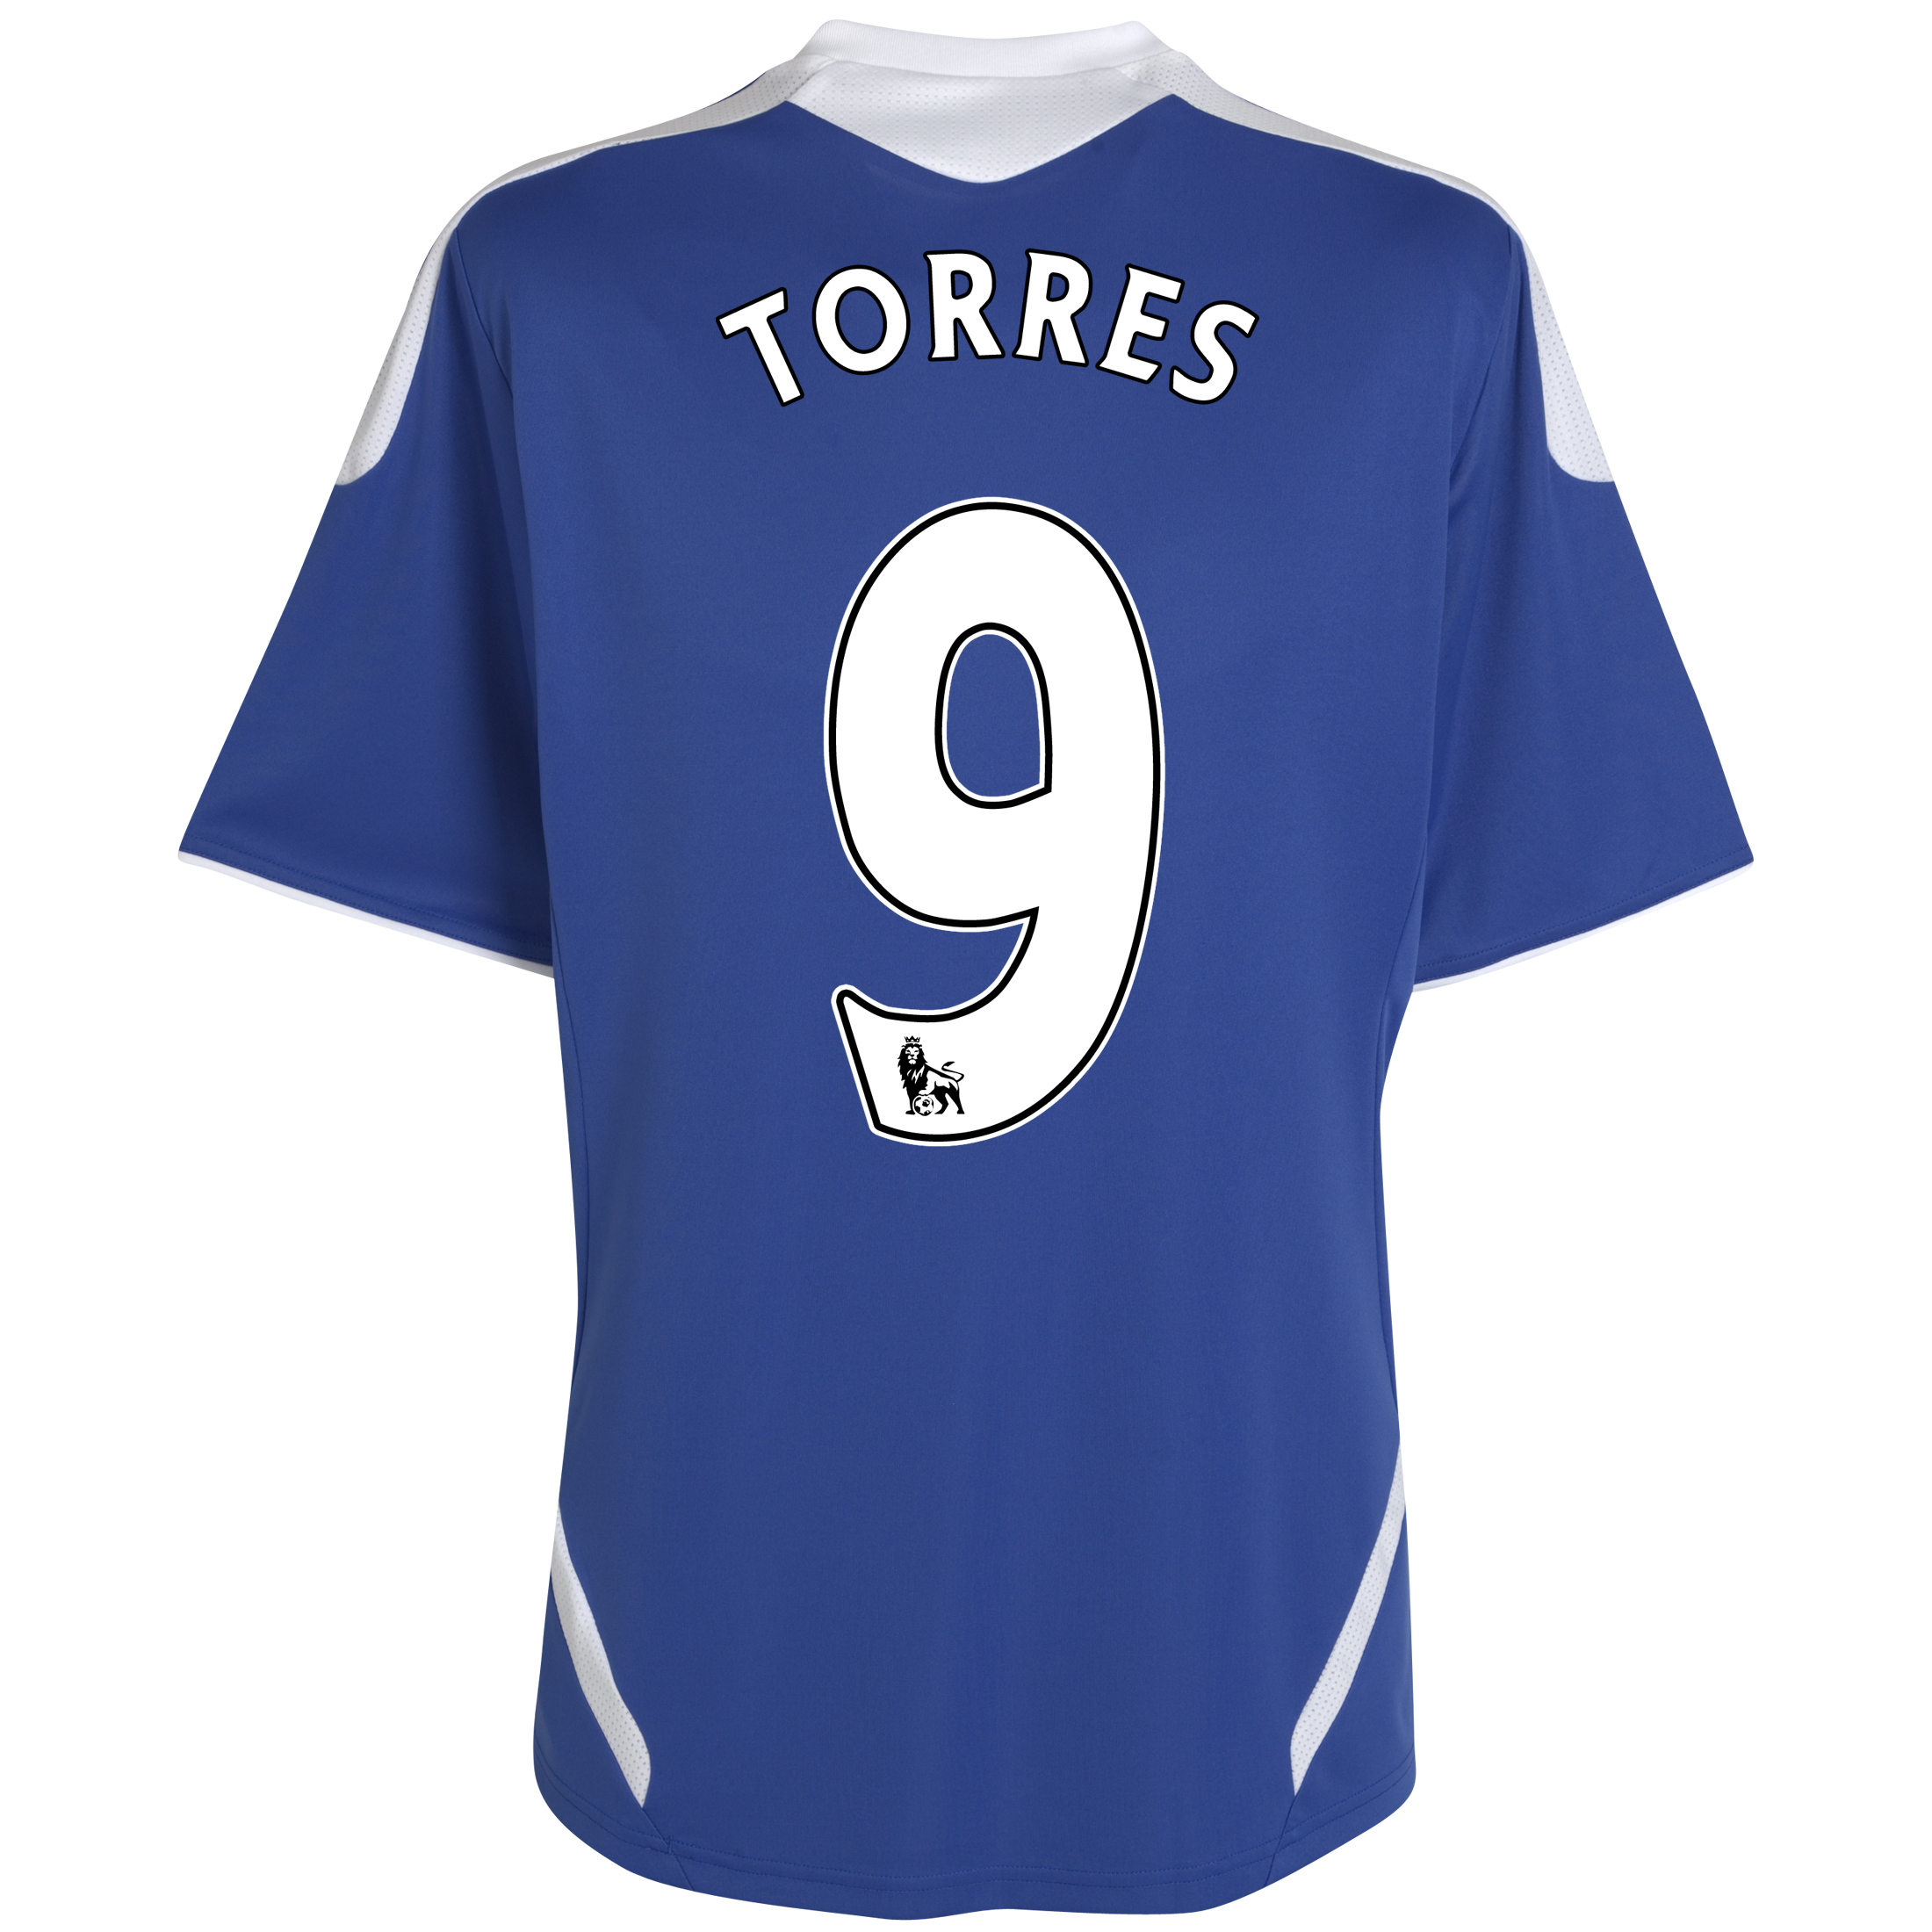 Chelsea Home Shirt 2011/12 With Torres 9 Printing